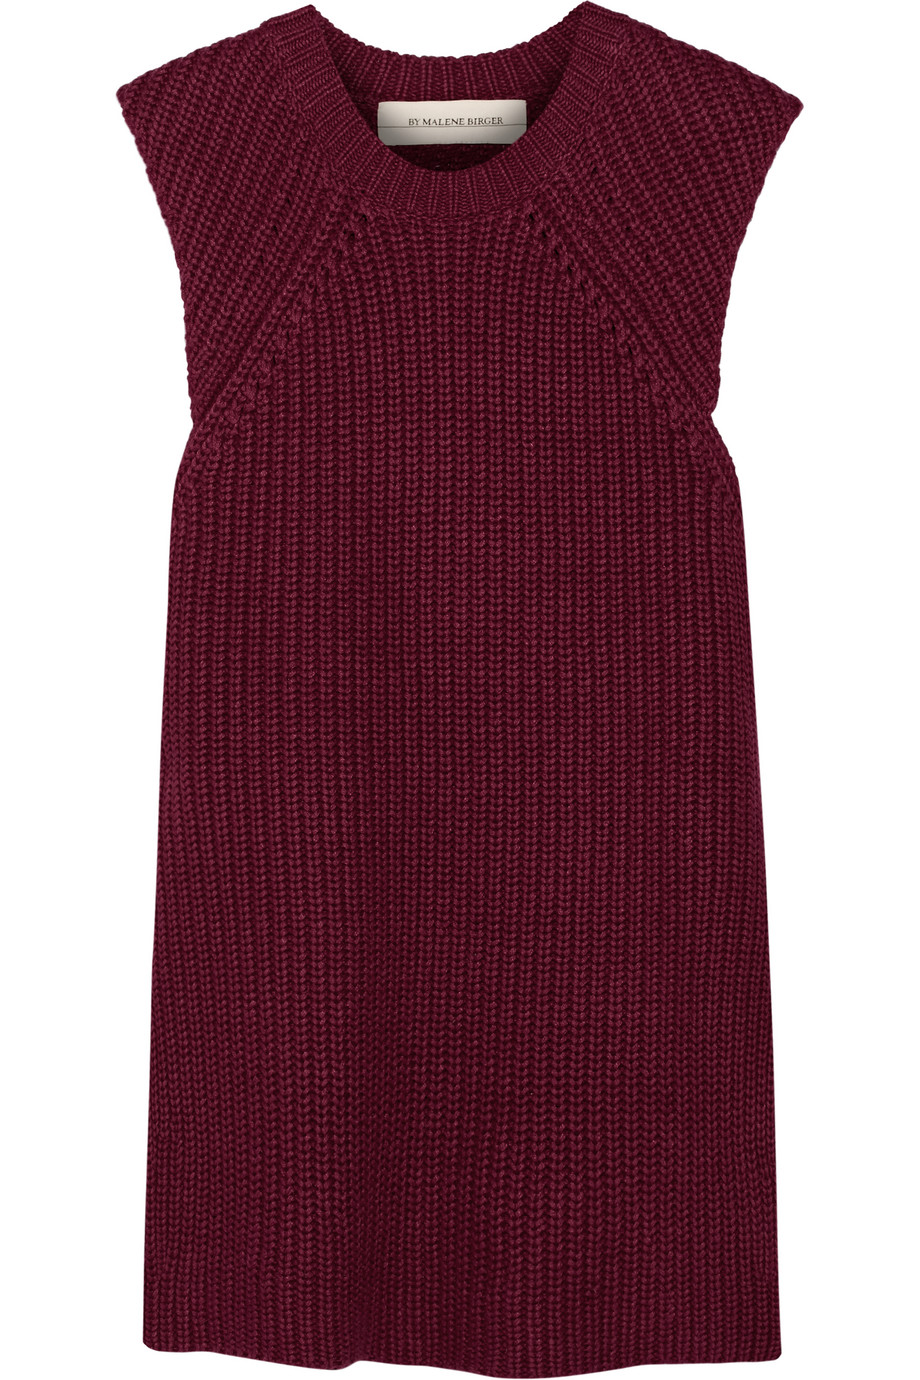 Darlis Ribbed Linen and Cotton-Blend Tunic, By Malene Birger, Burgundy, Women's